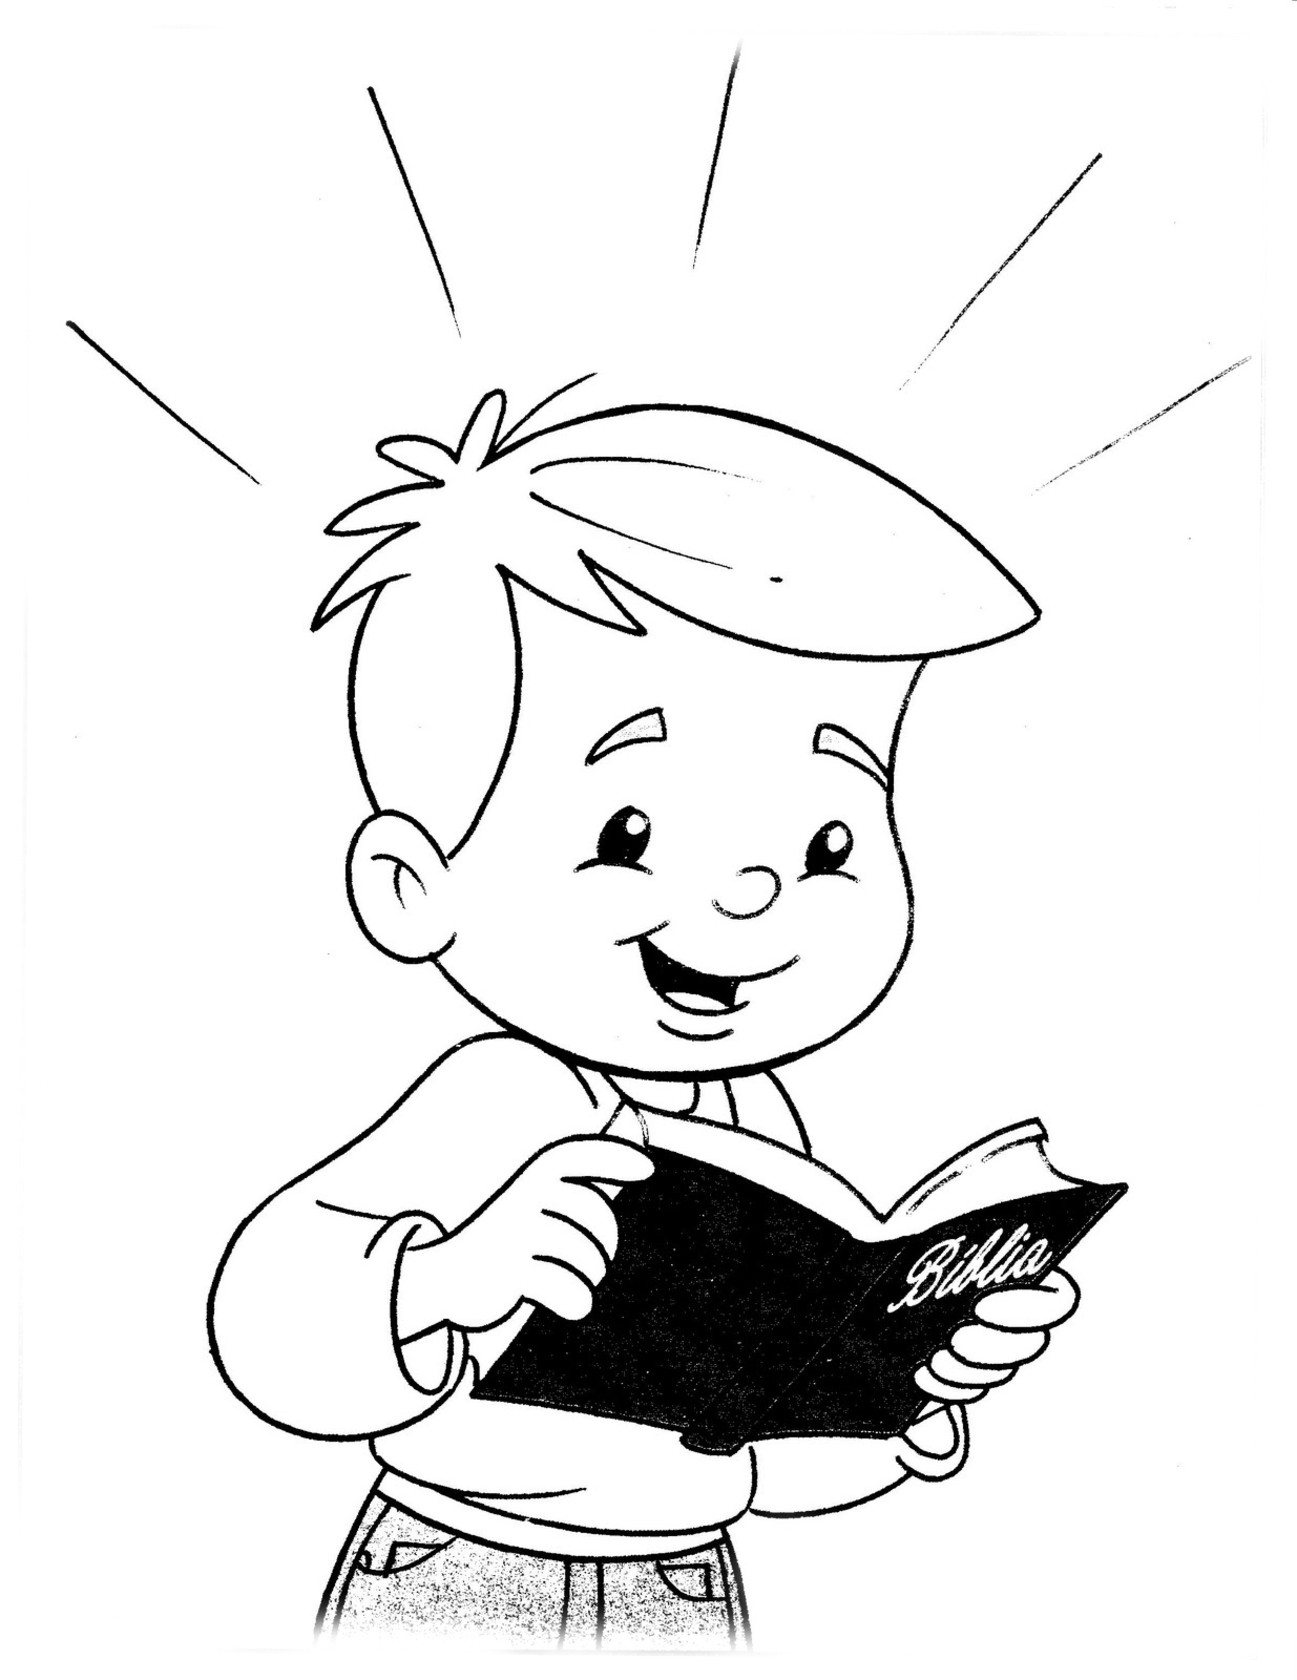 Religious coloring pages for preschoolers - Printable Christian Coloring Pages For Kids